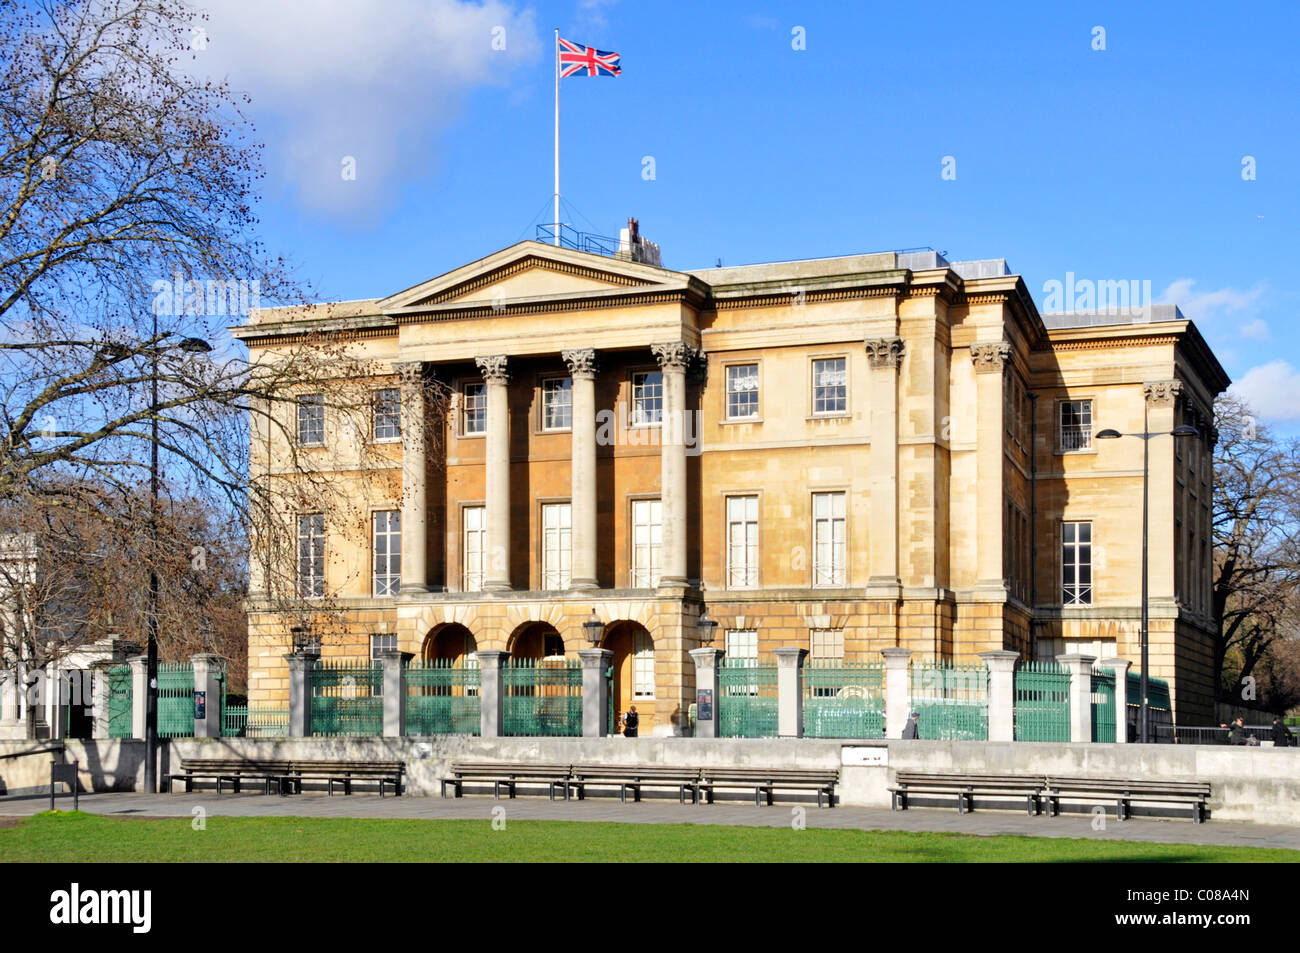 Historical Apsley House London townhouse of Duke of Wellington known as Number One London & open as museum & - Stock Image